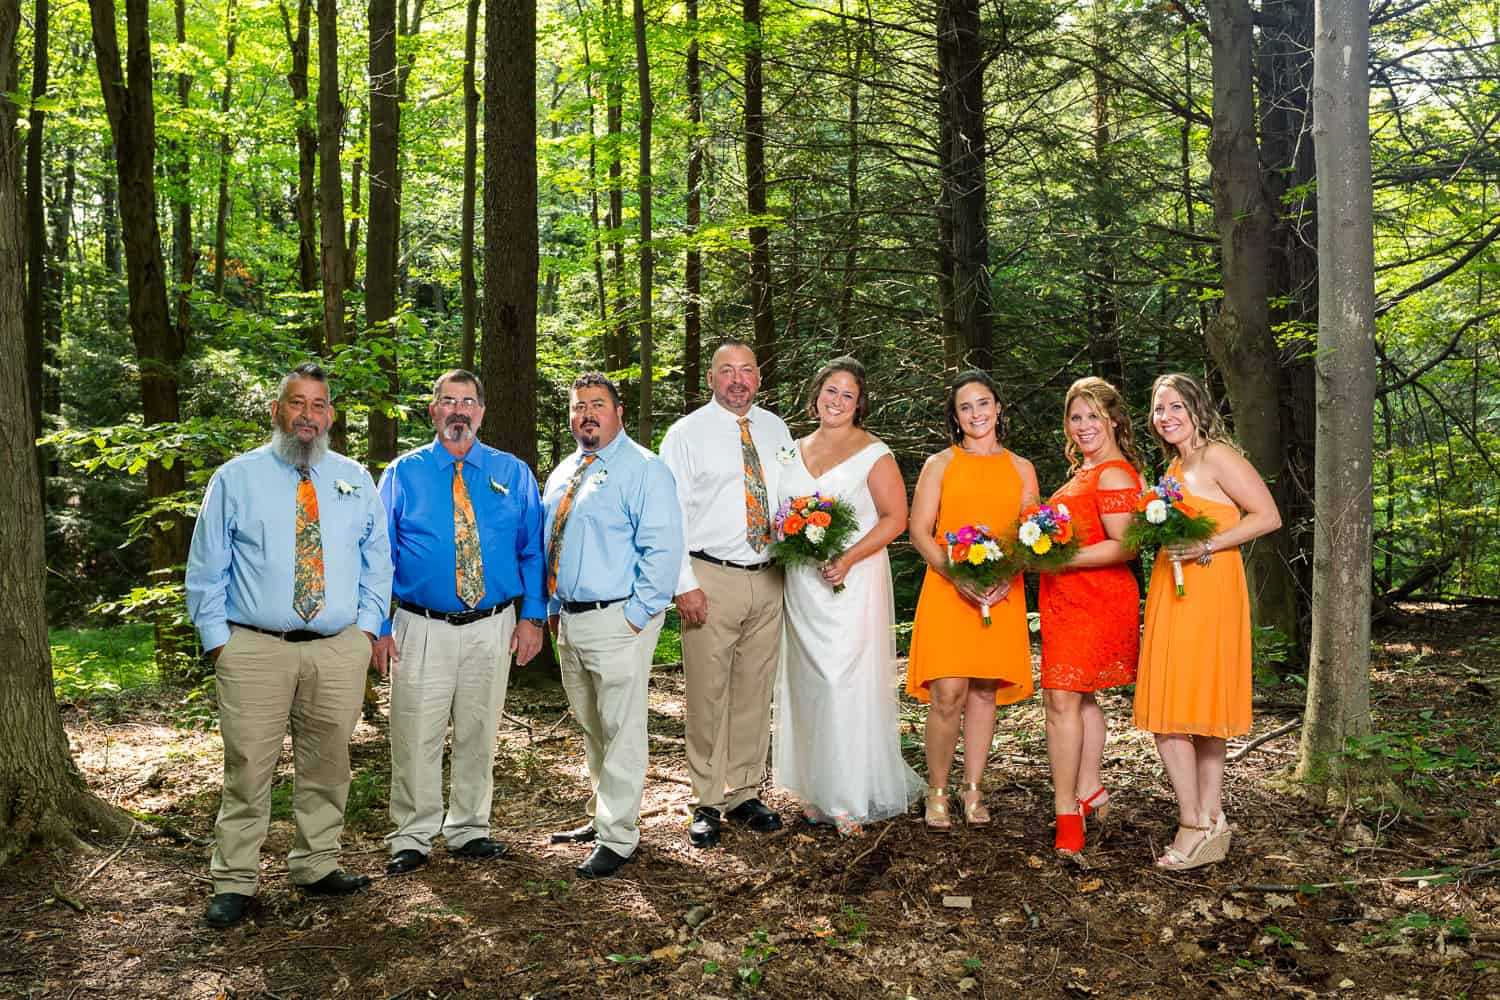 The wedding party wore orange at Paula's outdoor wedding at Luensman Overview Park on Thayer Hill.